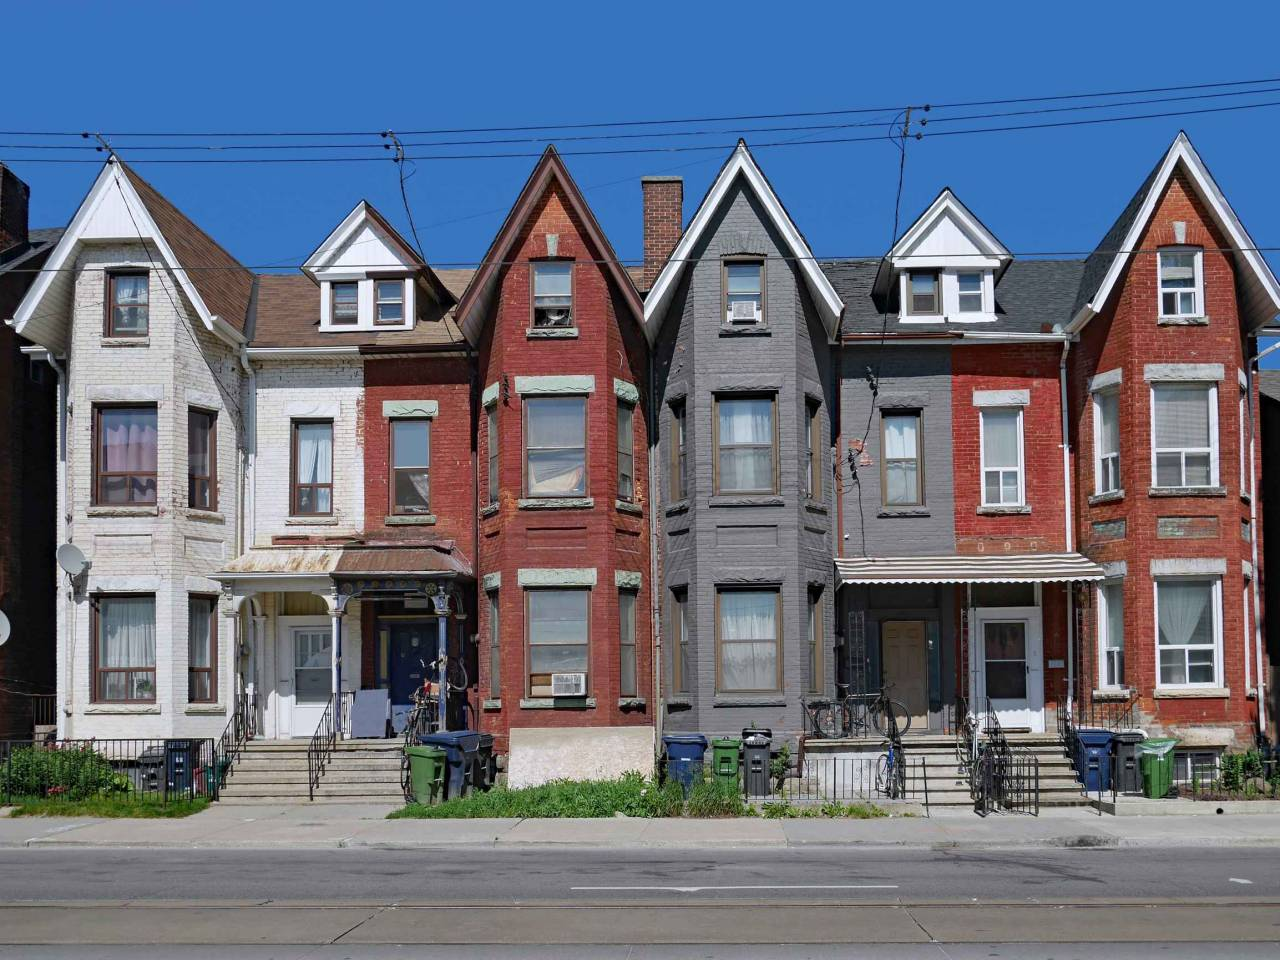 row of old Victorian urban houses with gables